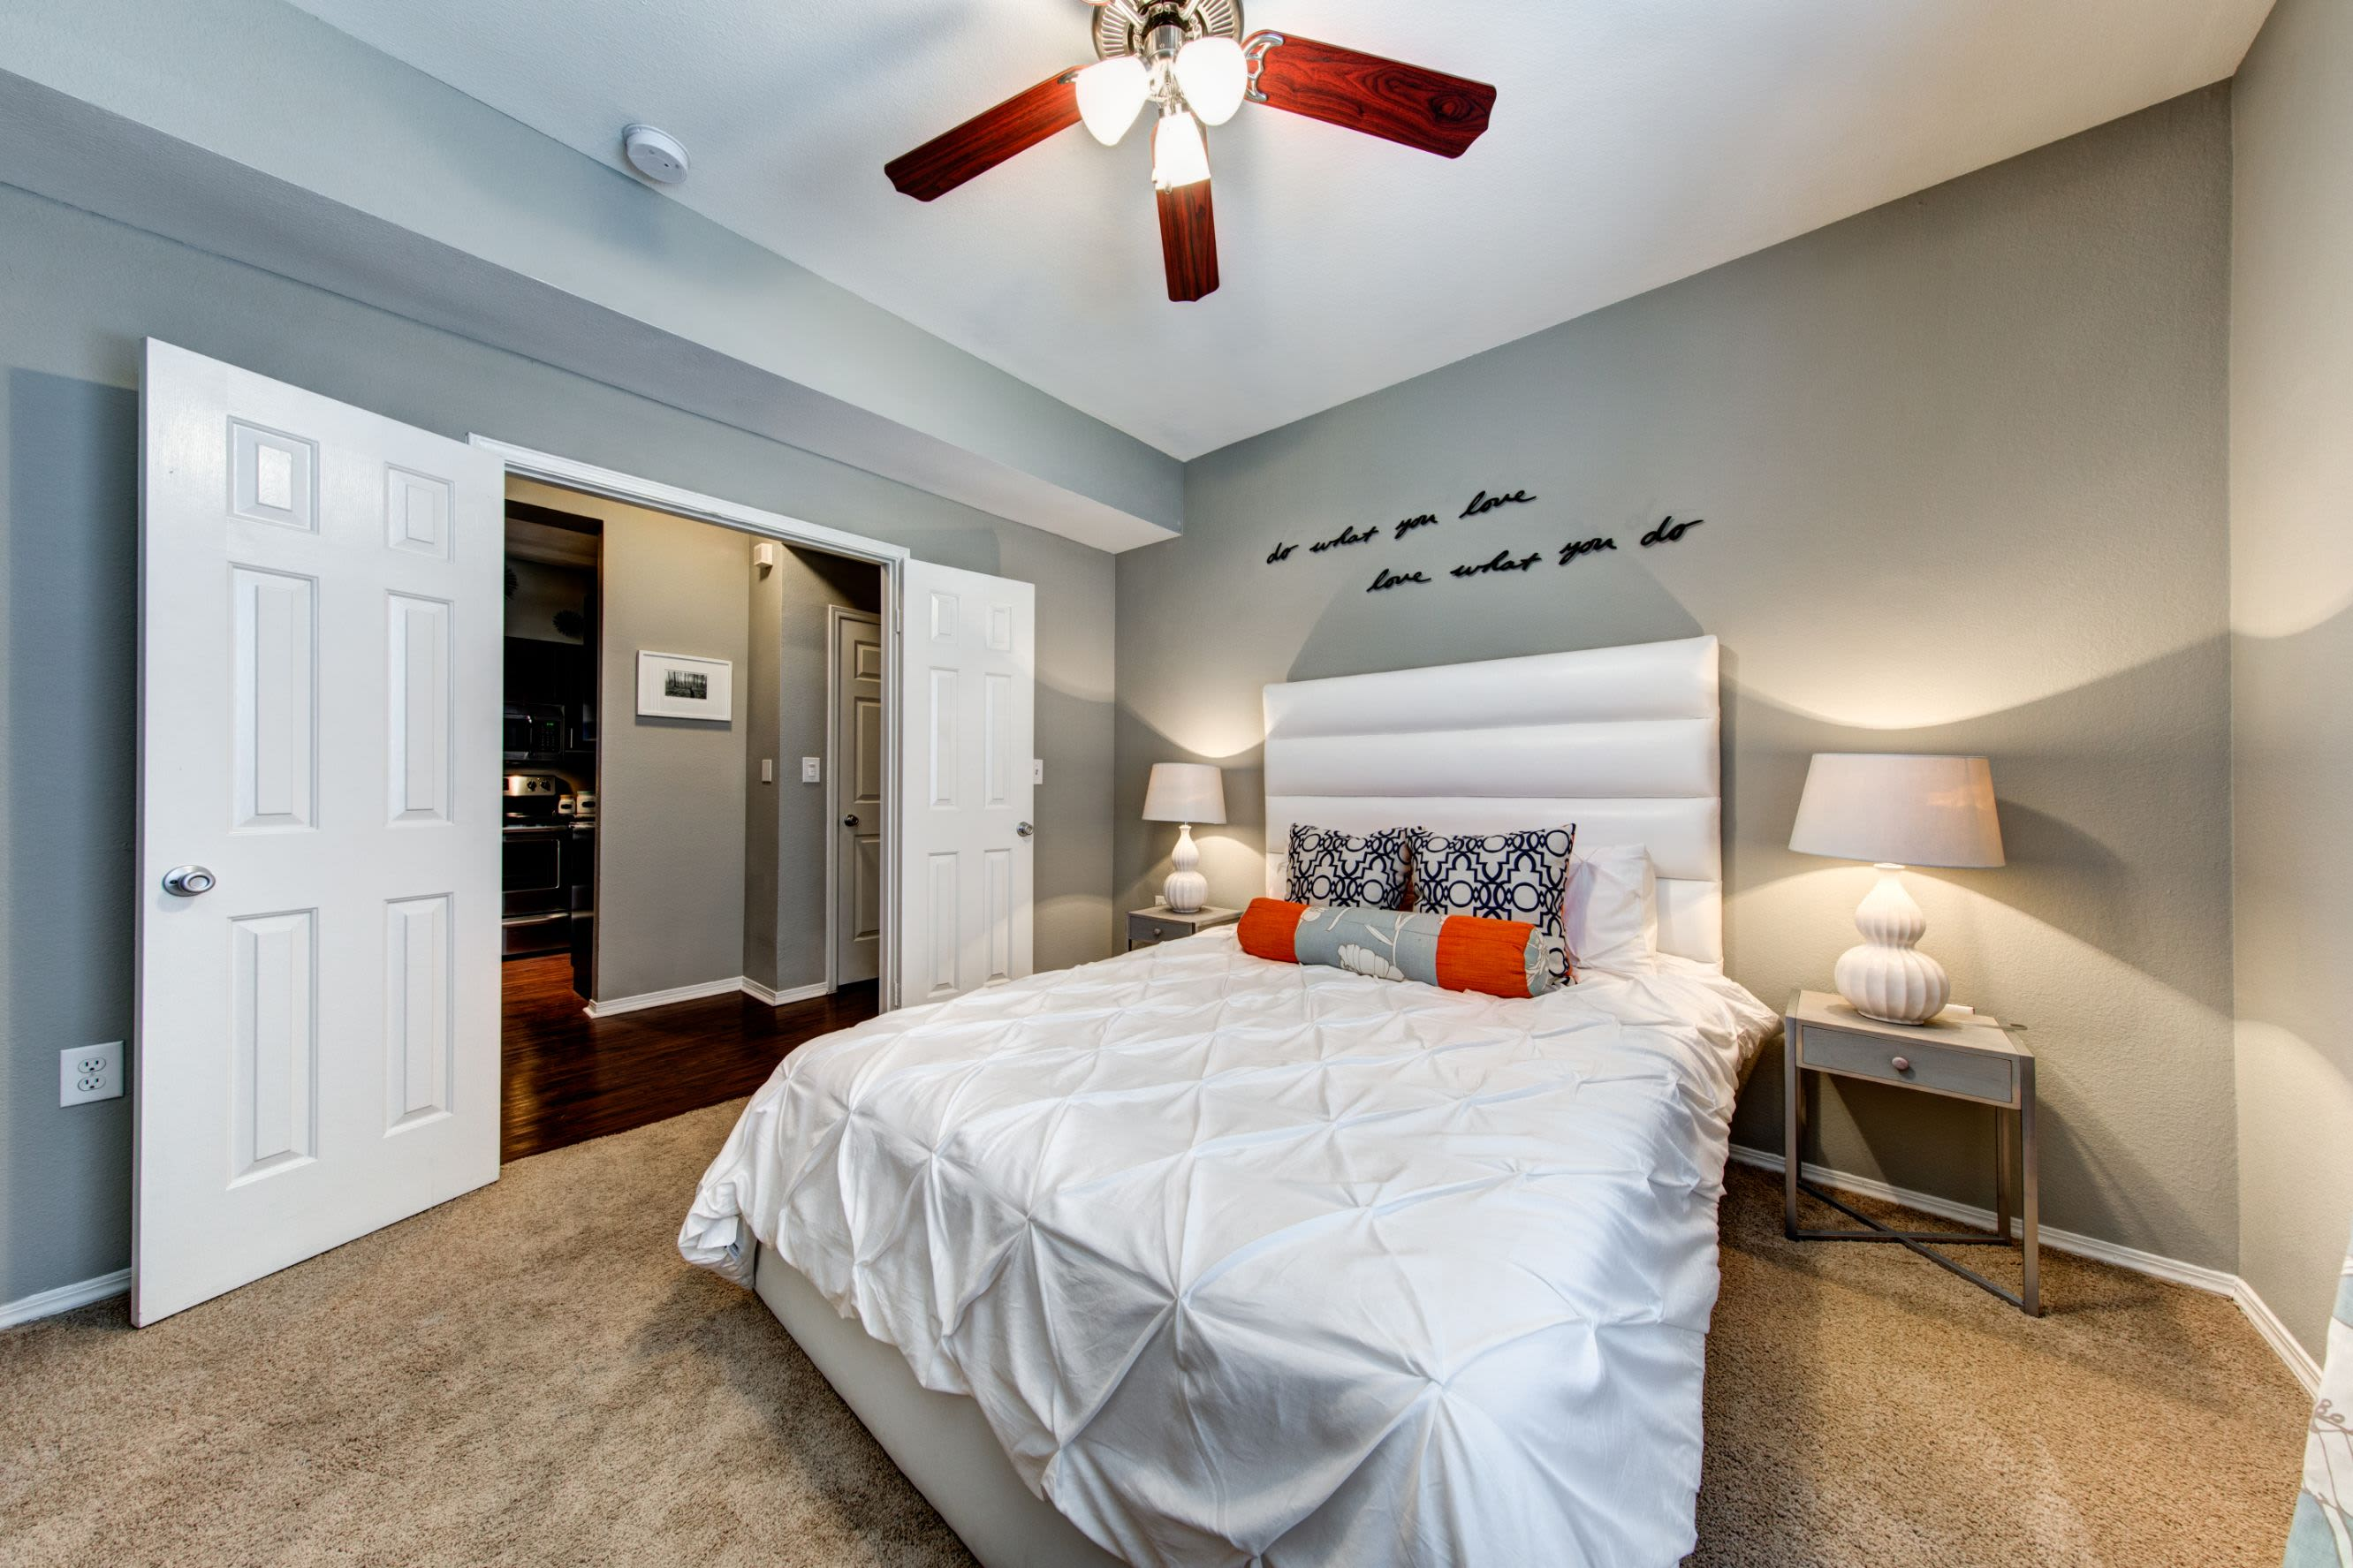 Bedroom with carpet floors and a ceiling fan at Marquis on Gaston in Dallas, Texas